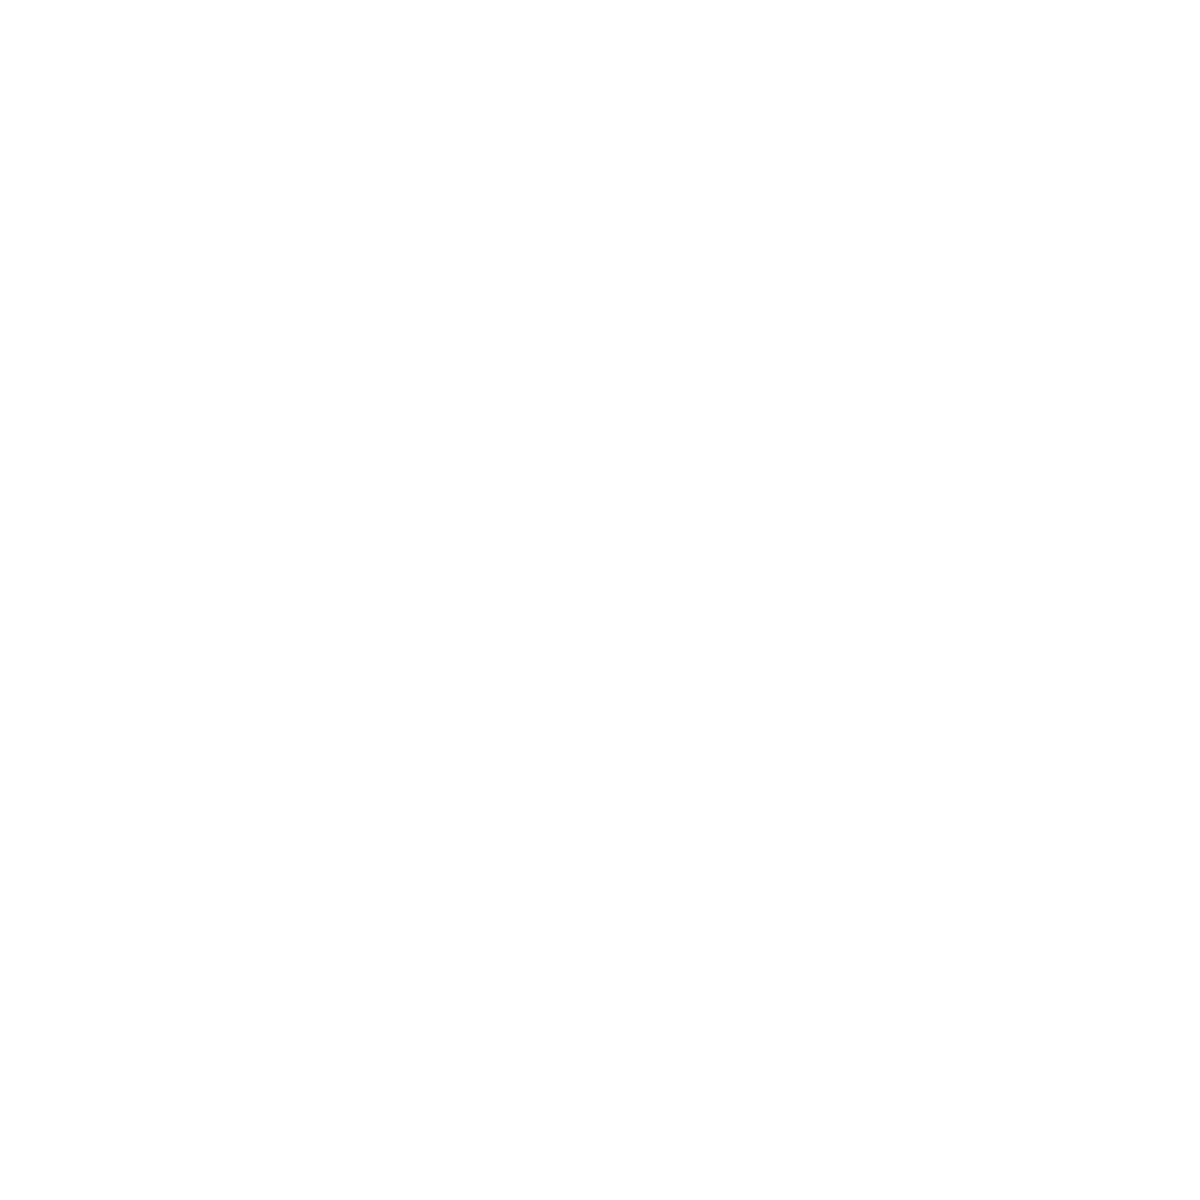 Rightarrow keys png. Index of images icons